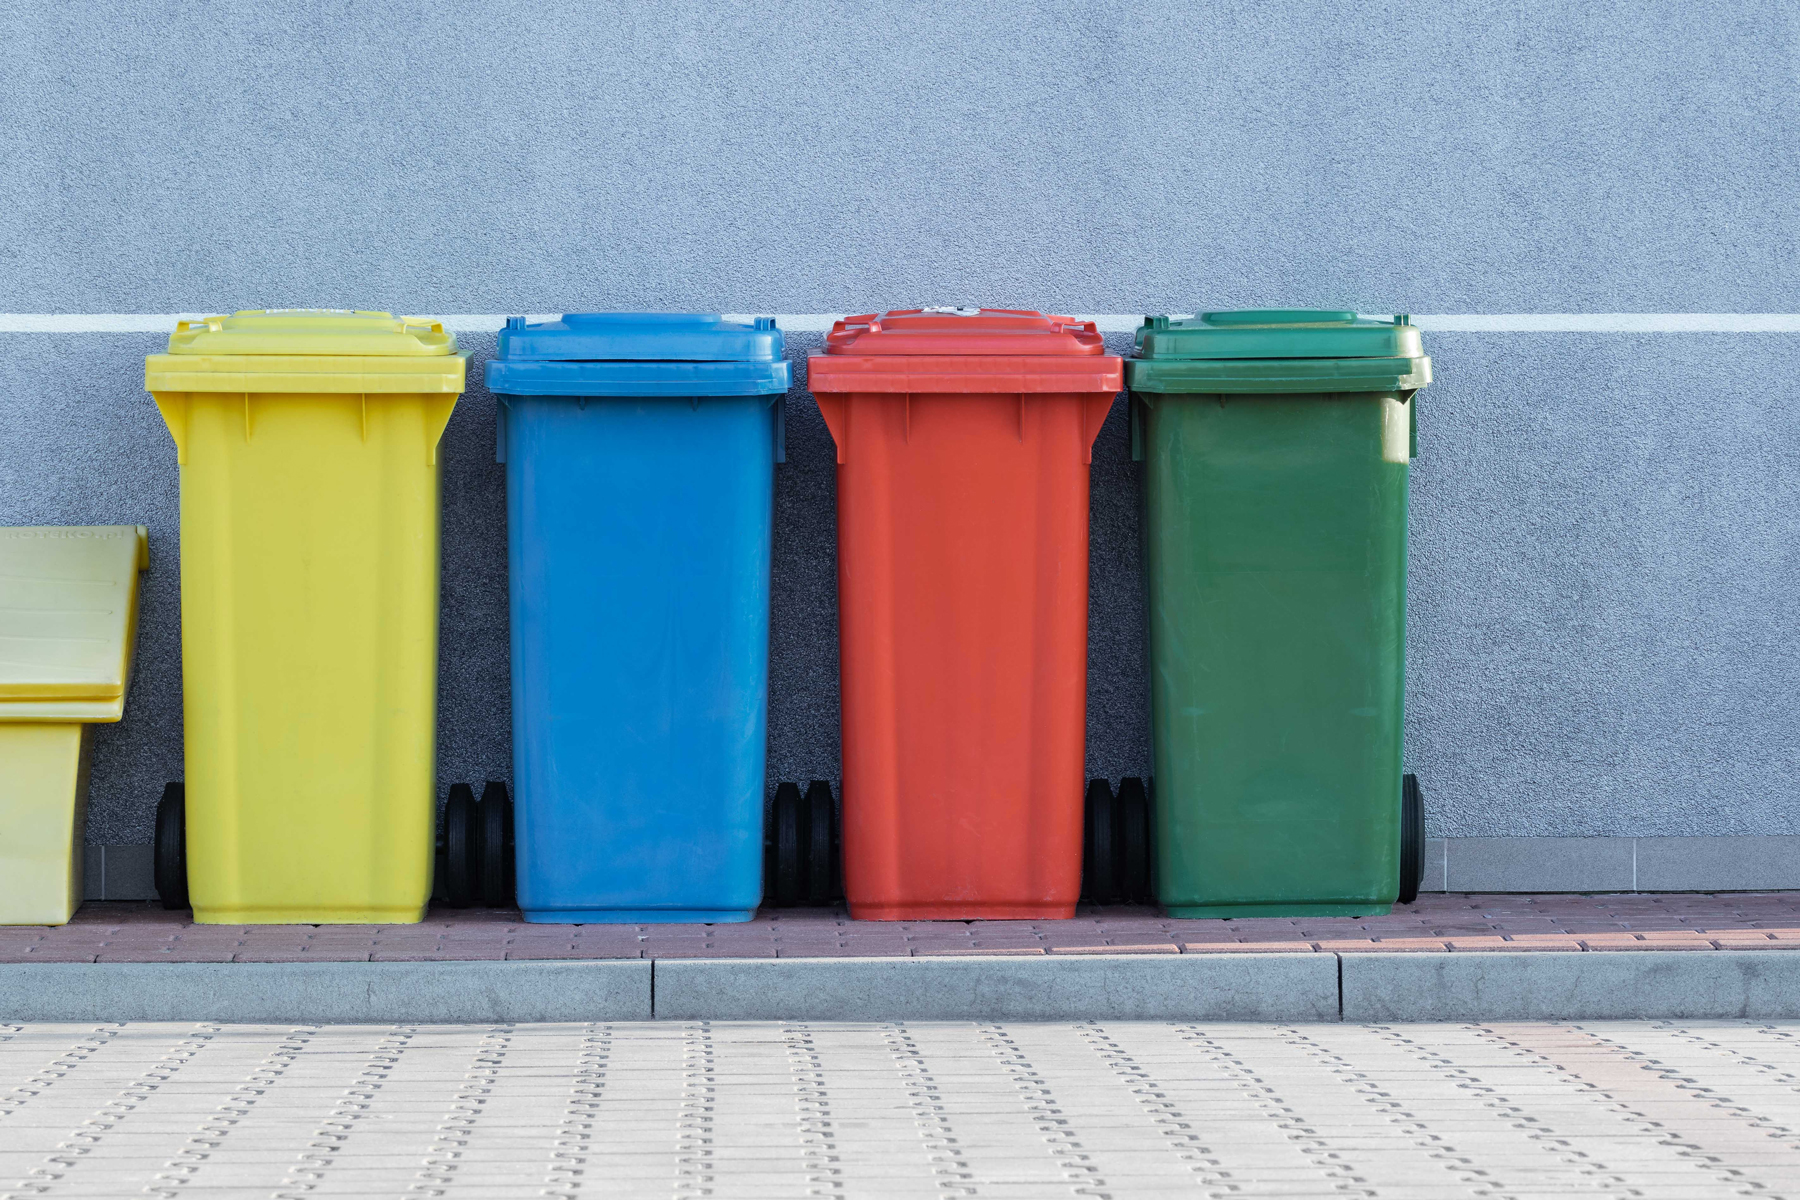 four recycling bins in an article about sustainability